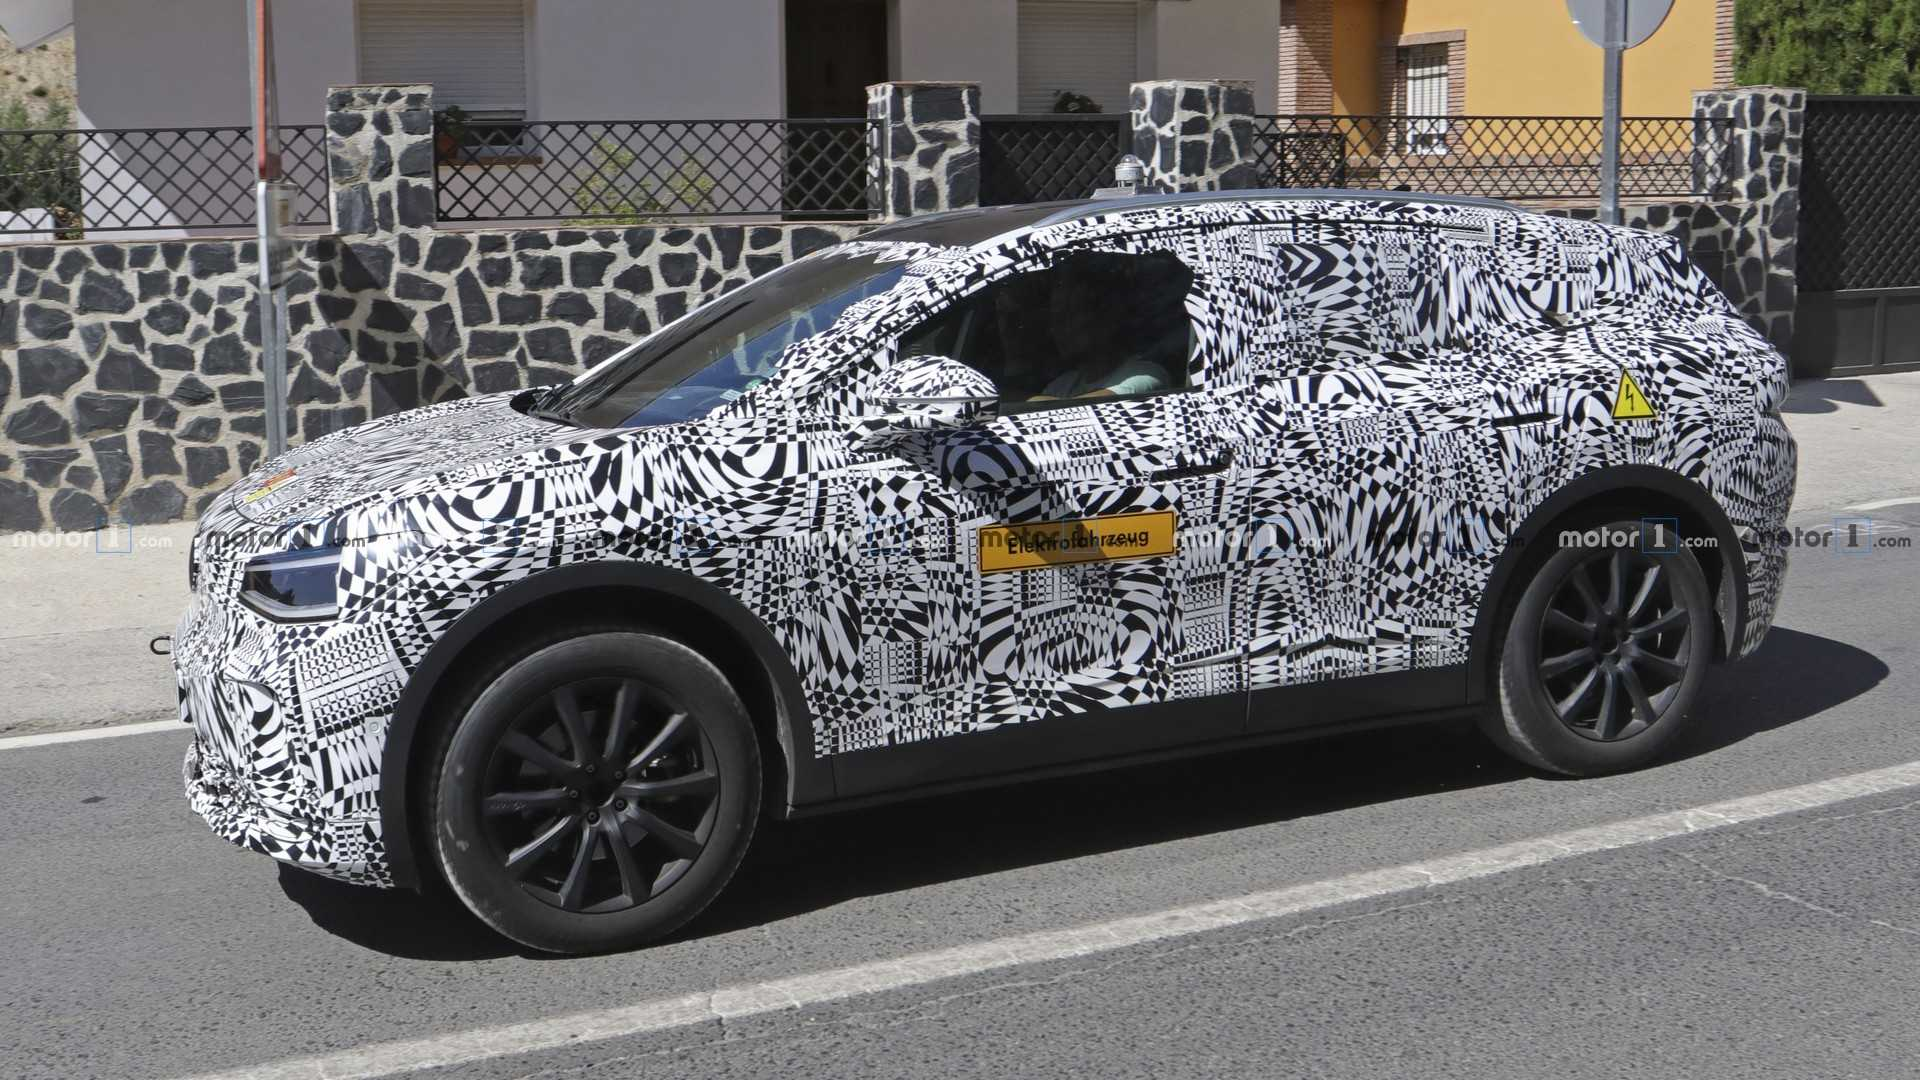 VW ID Crozz Electric Crossover SUV: Design, Release >> Vw I D Crozz Makes Spy Photo Debut With Production Body Update